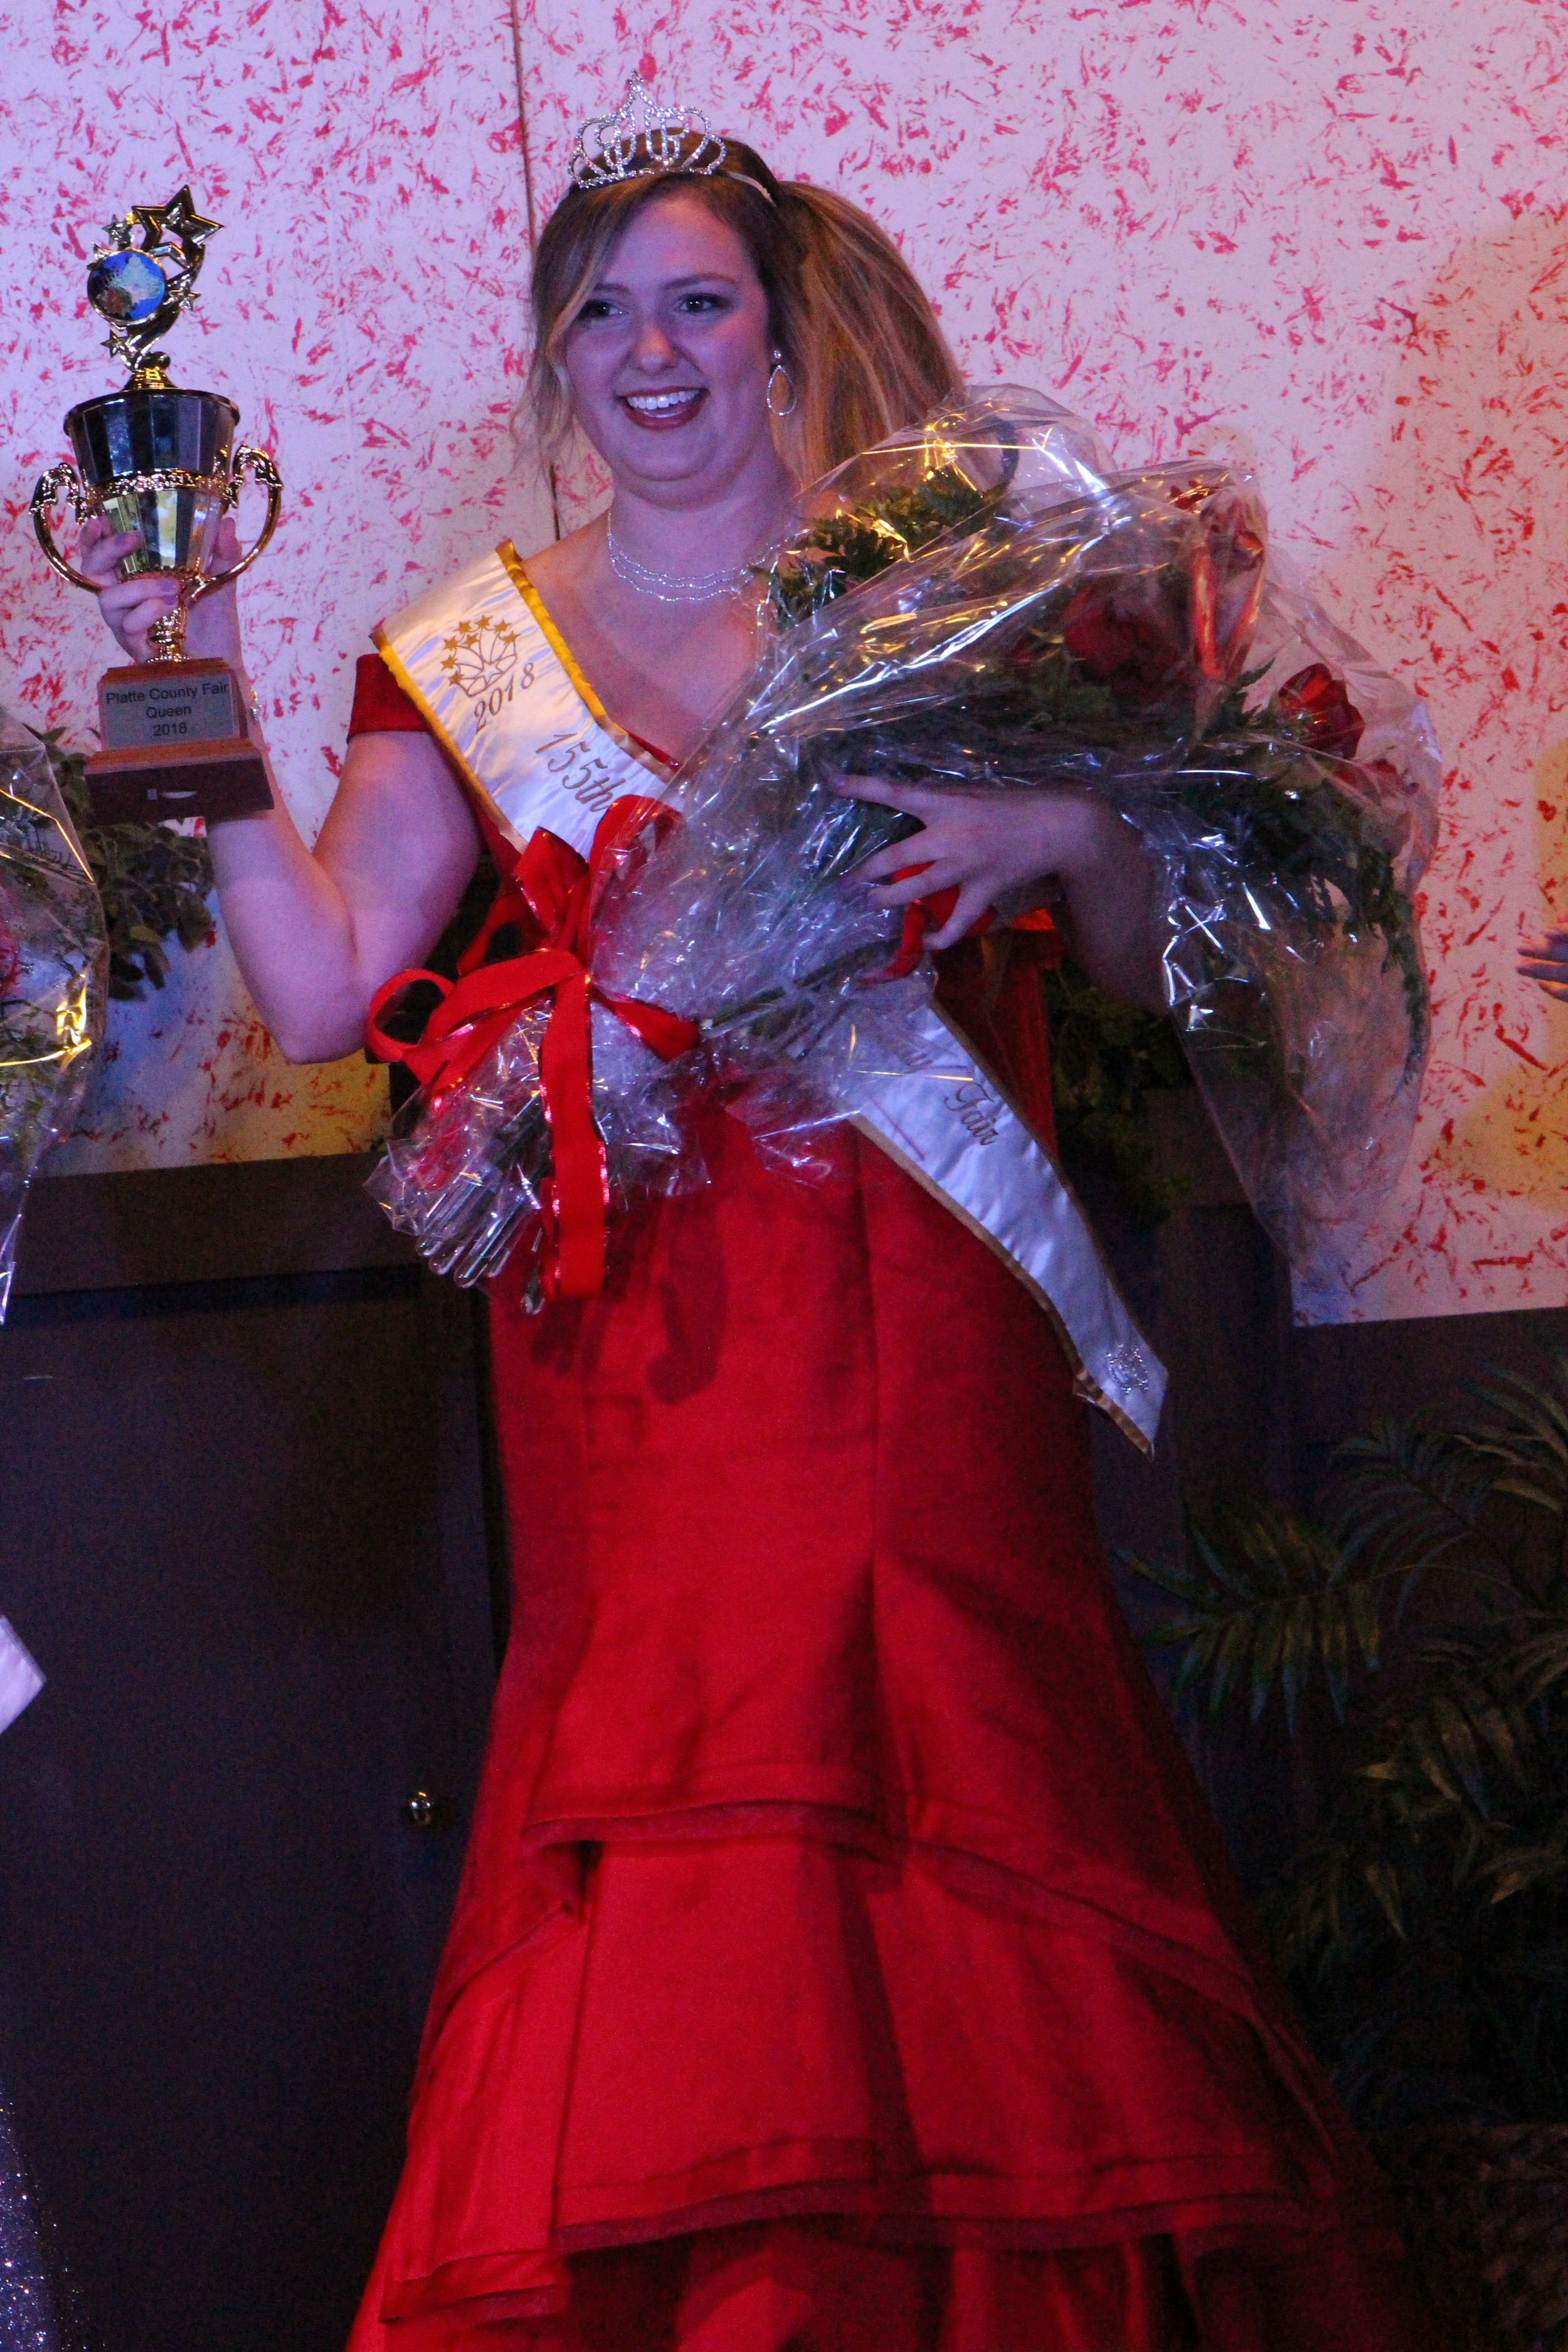 CODY THORN/Citizen photo Platte City resident Emma Testorff was crowned the 2018 Platte County Fair Queen. The Missouri Western senior will receive a $1,000 scholarship from the Missouri Western Foundation.